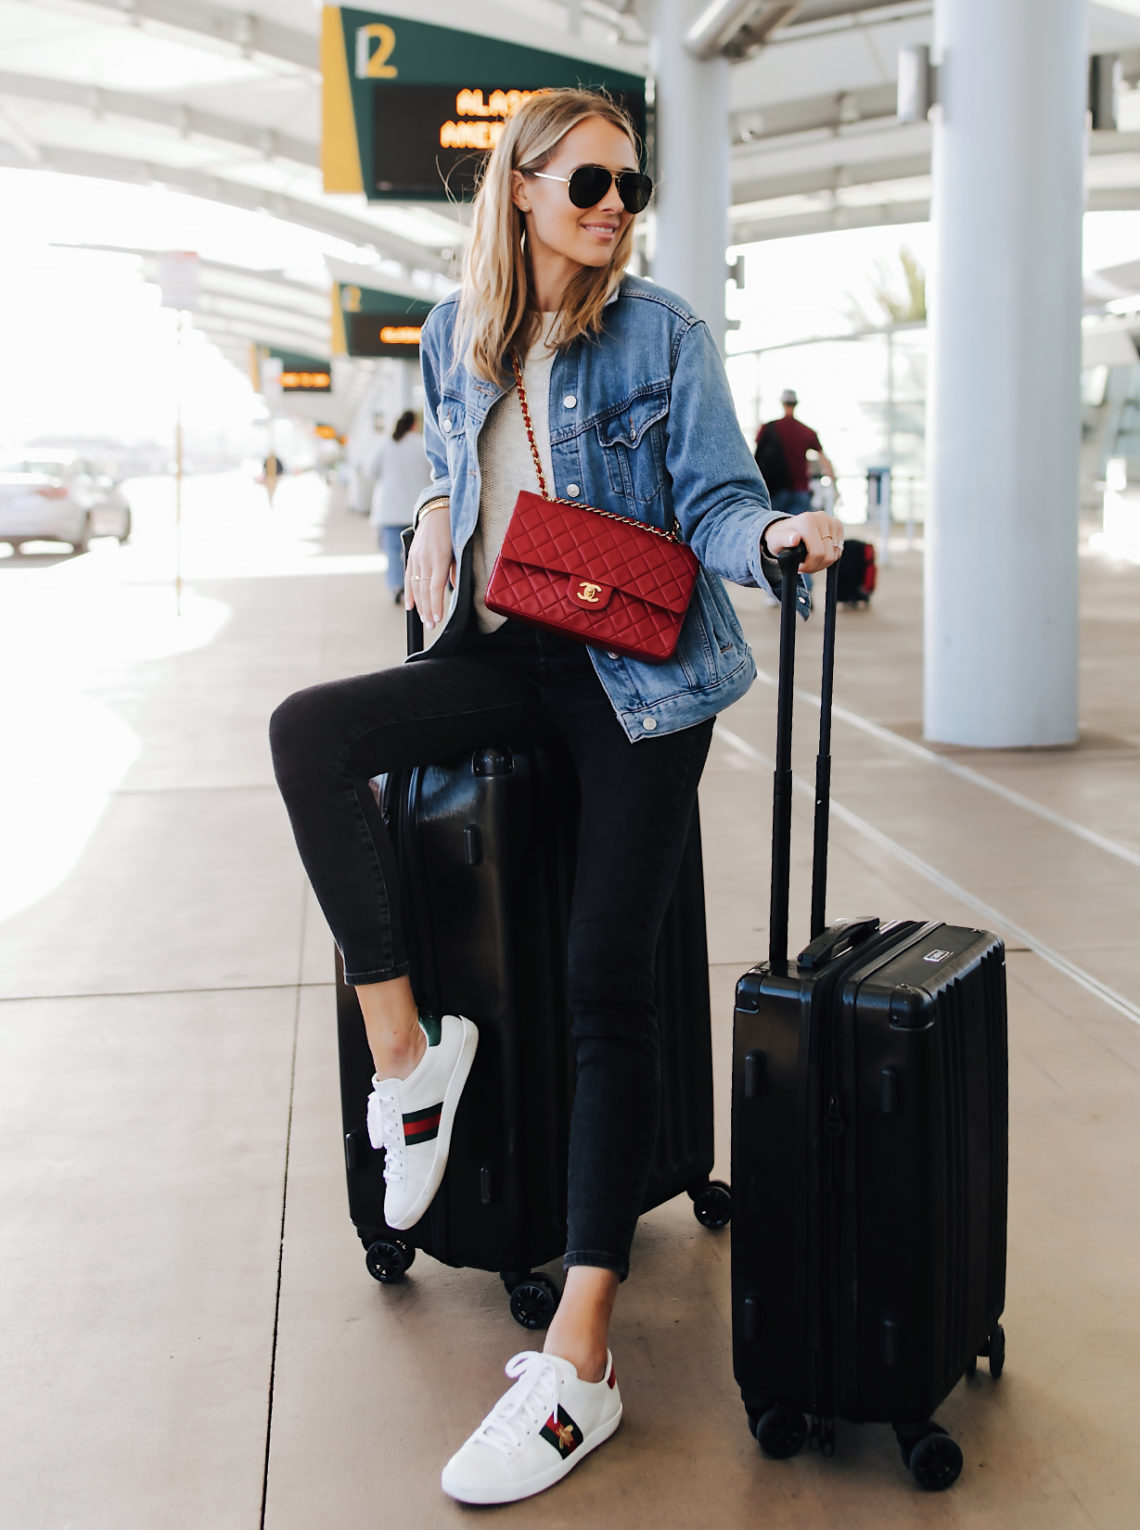 Fashion Jackson Airport Style Wearing Denim Jacket Black Skinny Jeans Gucci Sneakers Red Chanel Handbag Calpak Black Ambeur Spinner Luggage Set Featured Image